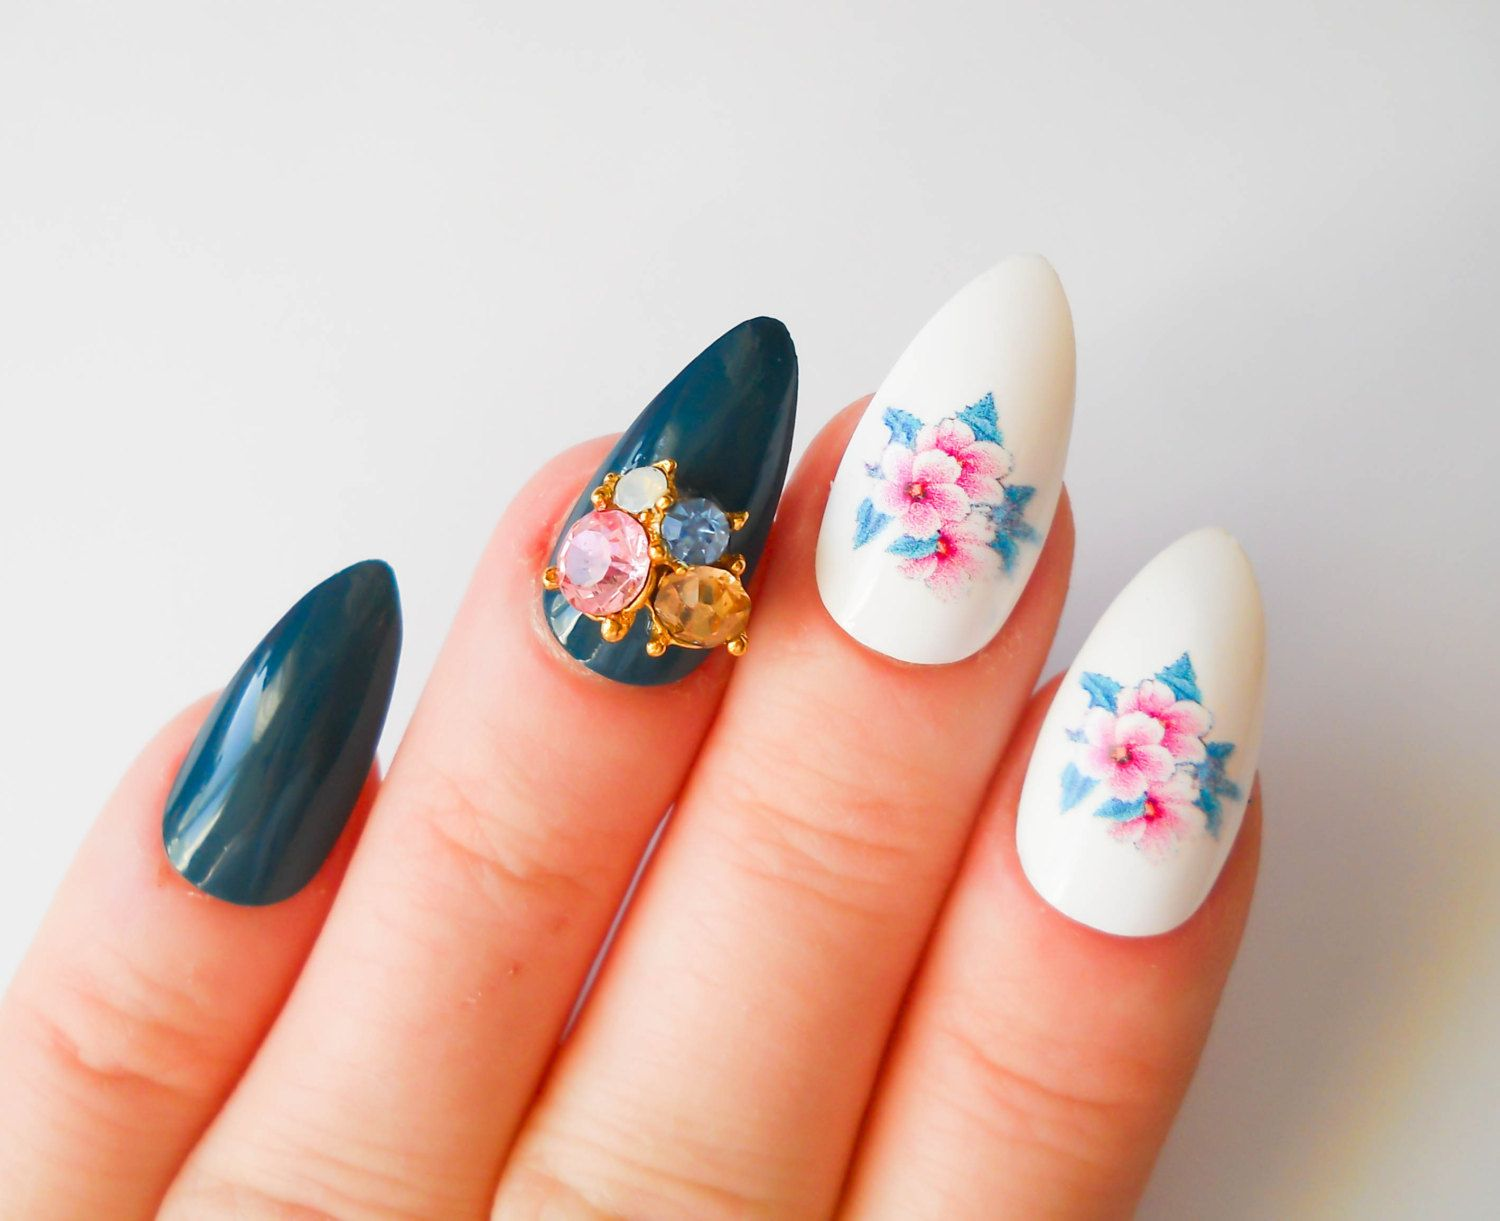 almond nail - Google Search | Nails | Pinterest | Almond nails ...